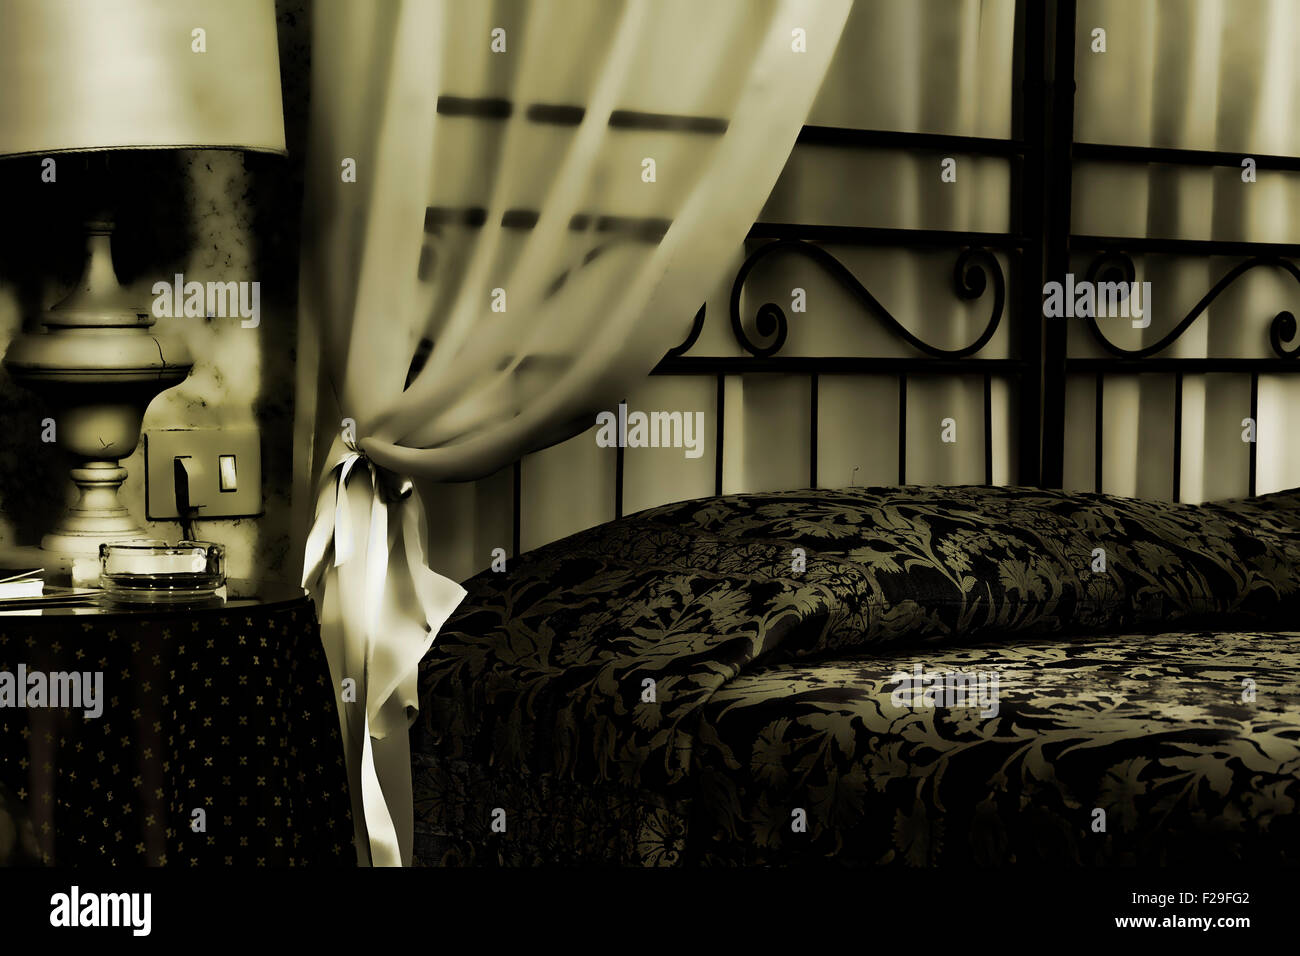 Bed in an albergue room - Stock Image